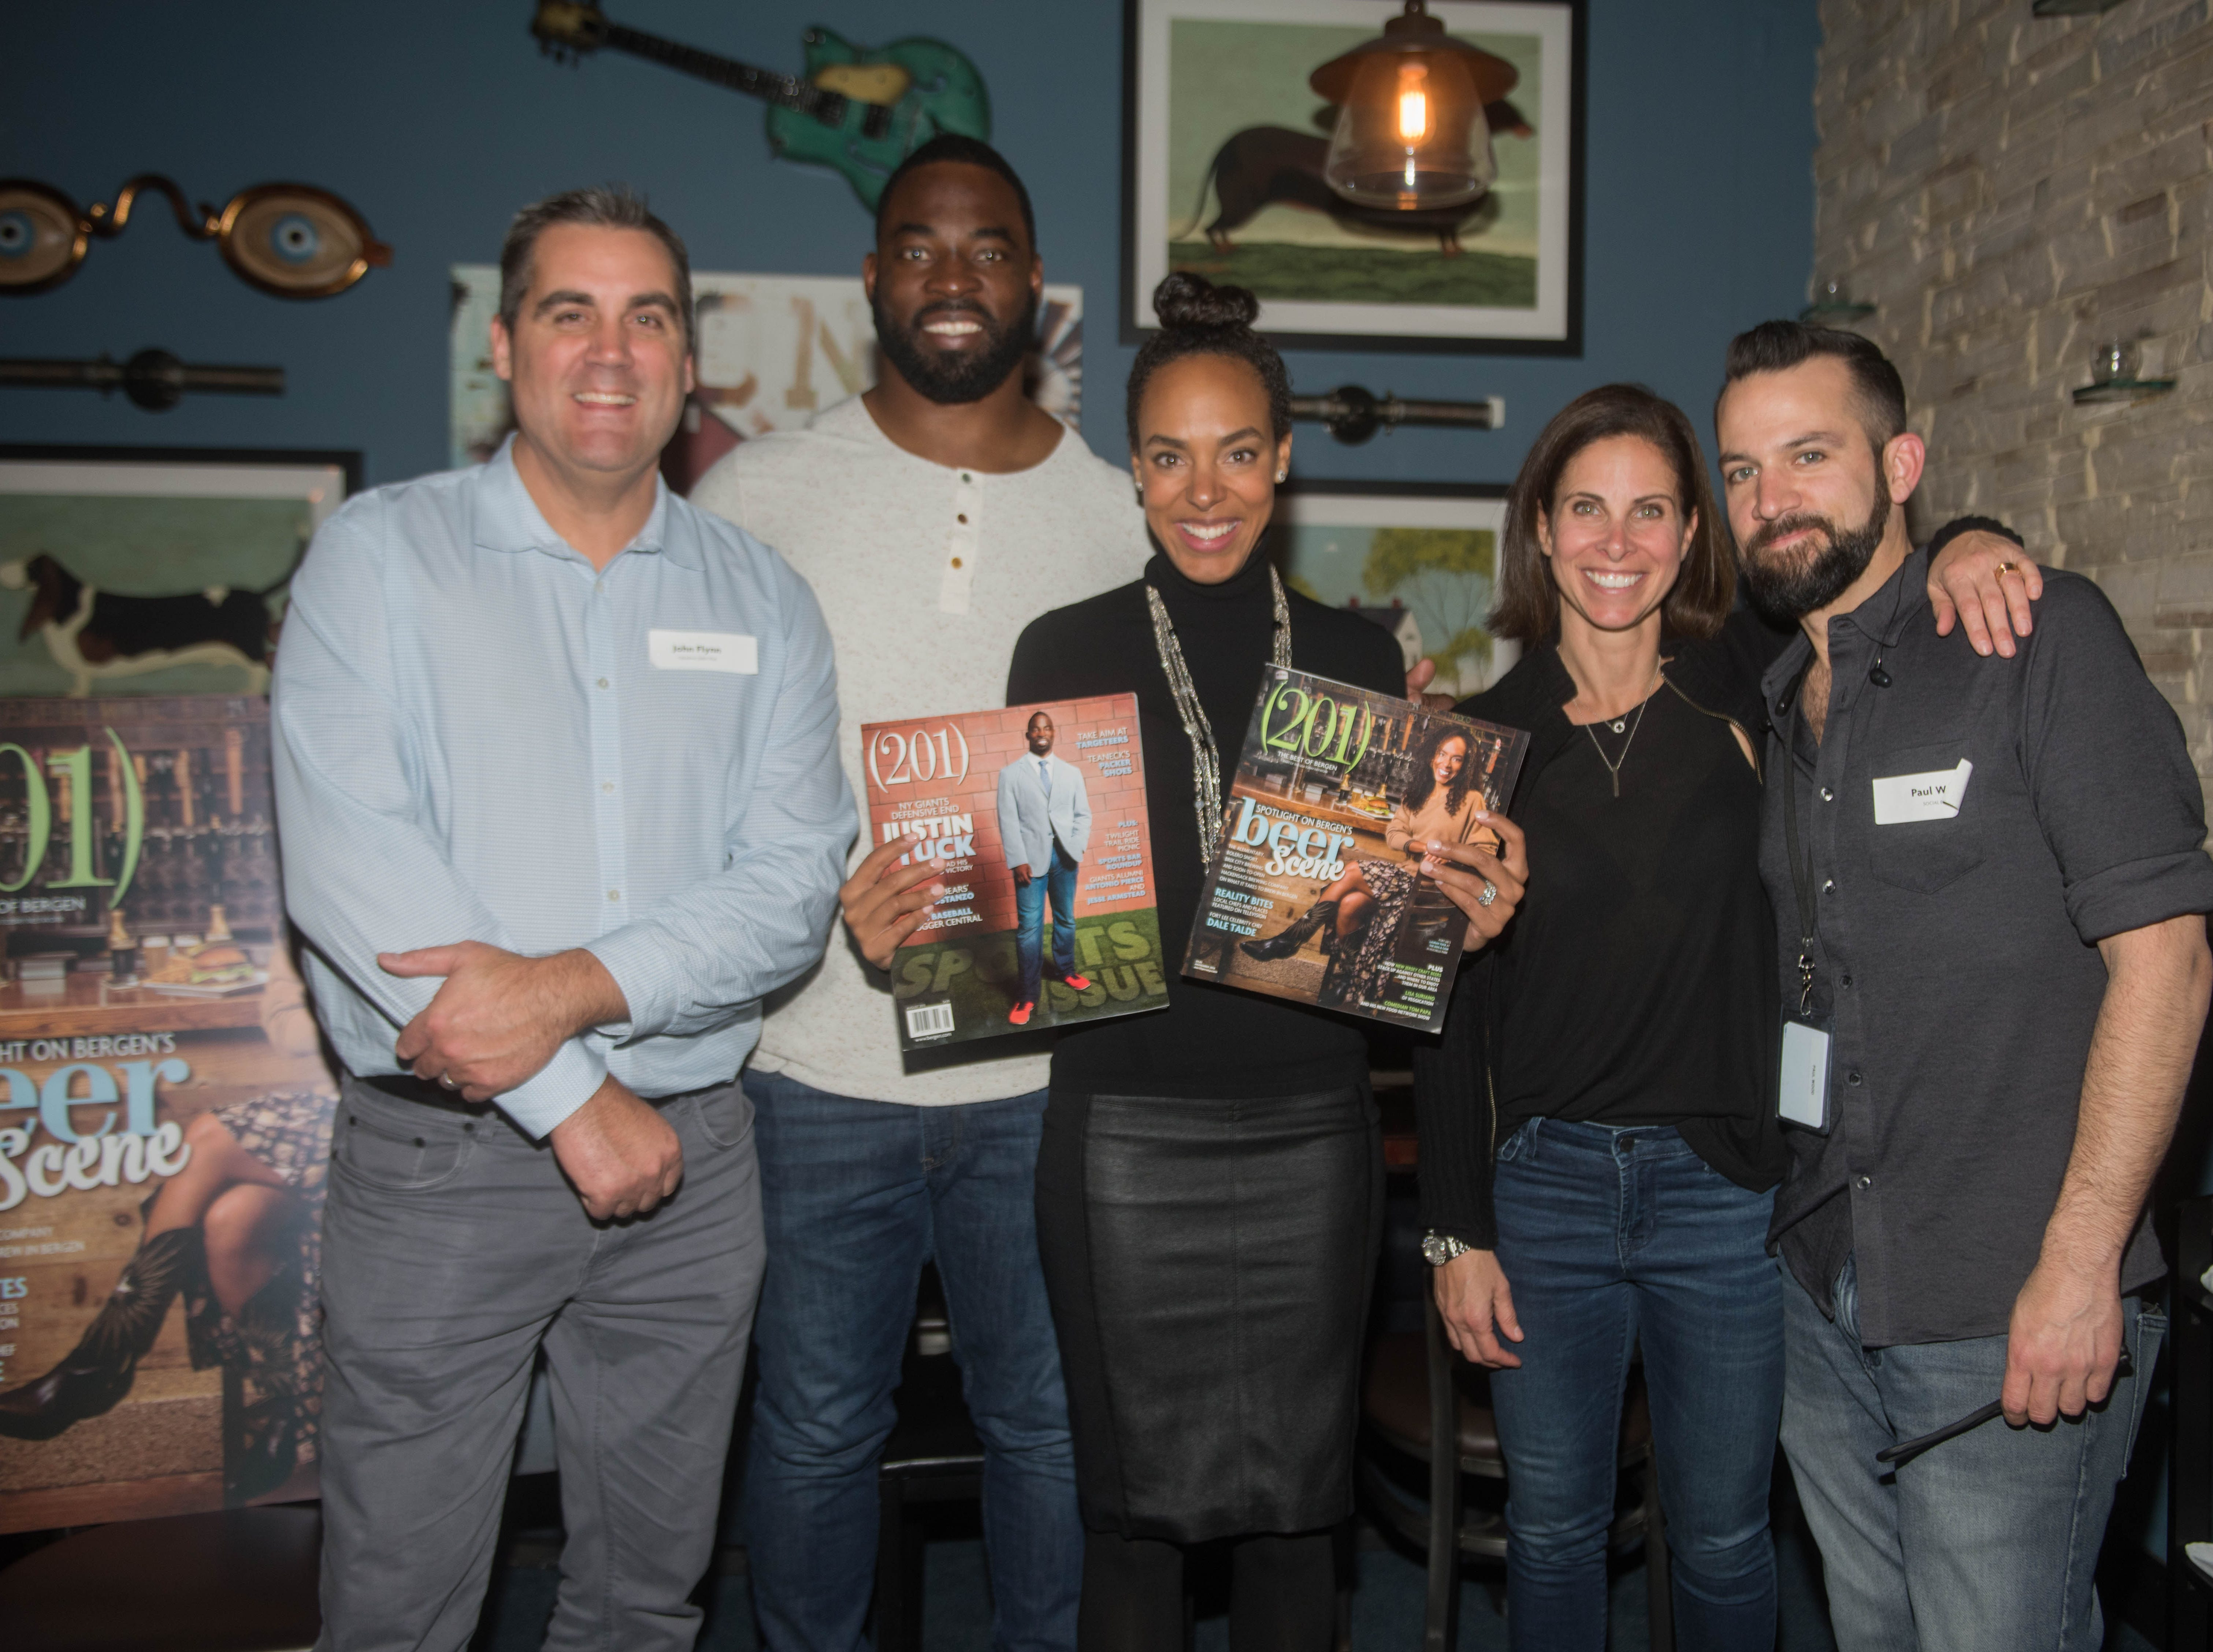 John Flynn, Justin Tuck and Lauran Tuck, T.H. Waldman and Paul Wood. (201) Magazine and NorthJersey.com held Taste Test Tuesday at he Dog and Cask in Rochelle Park with this month's cover model, Lauran Tuck and former cover model and former NY Giant Justin Tuck. 11/13/2018